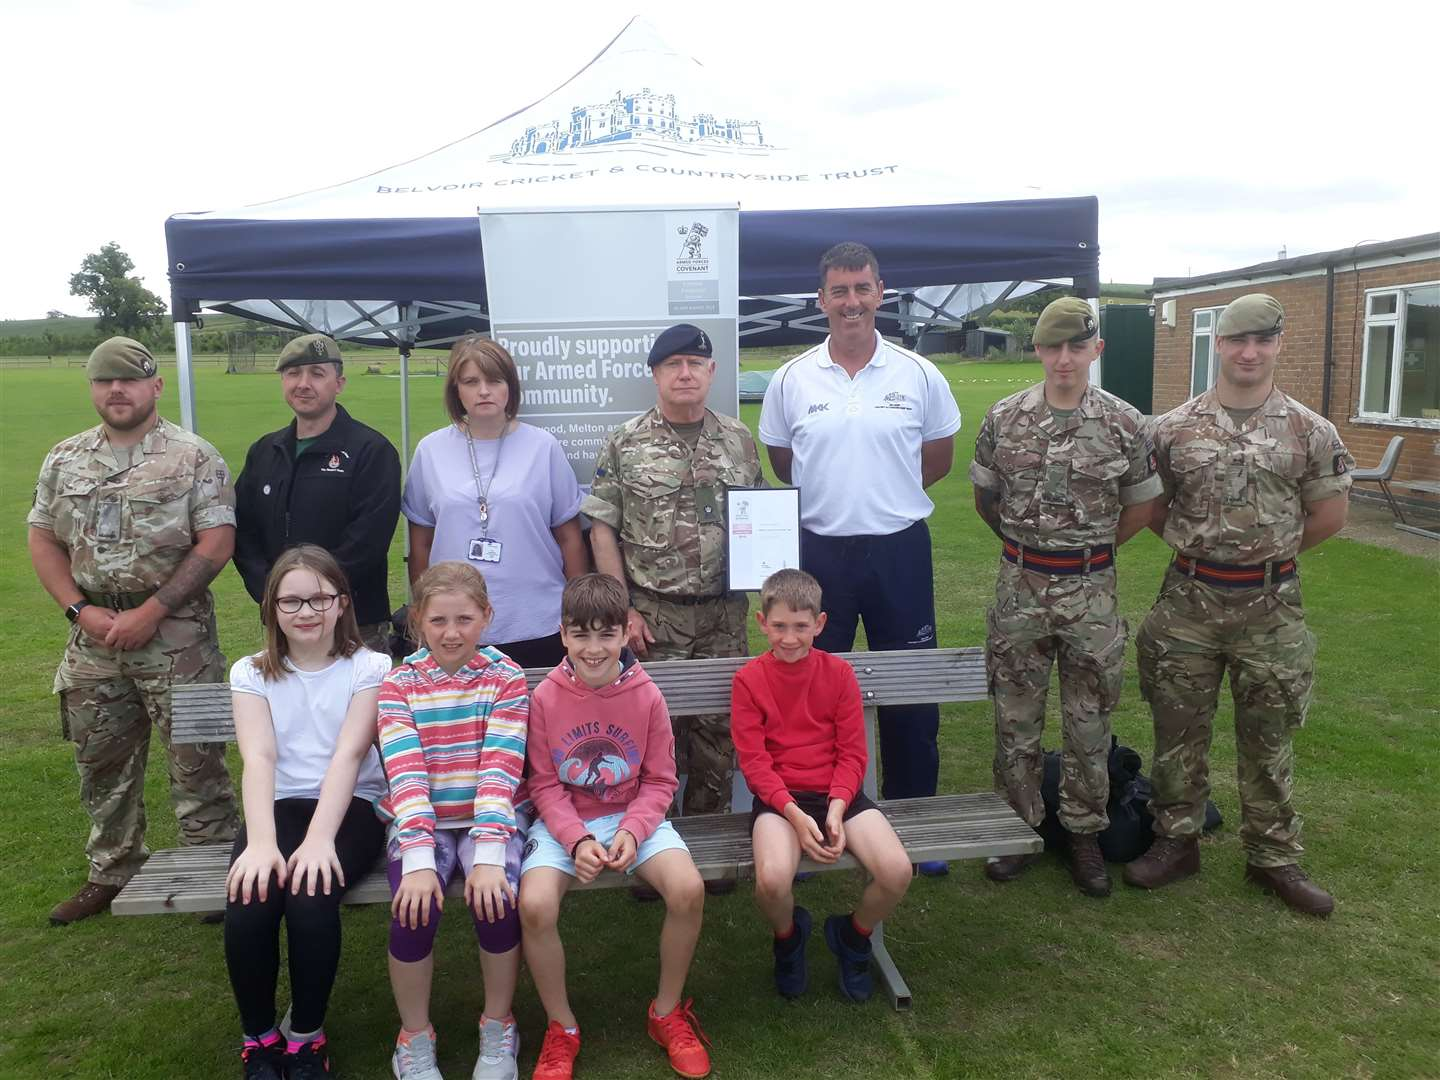 The Cricket and Countryside Trust have joined forces with the army. (14826601)